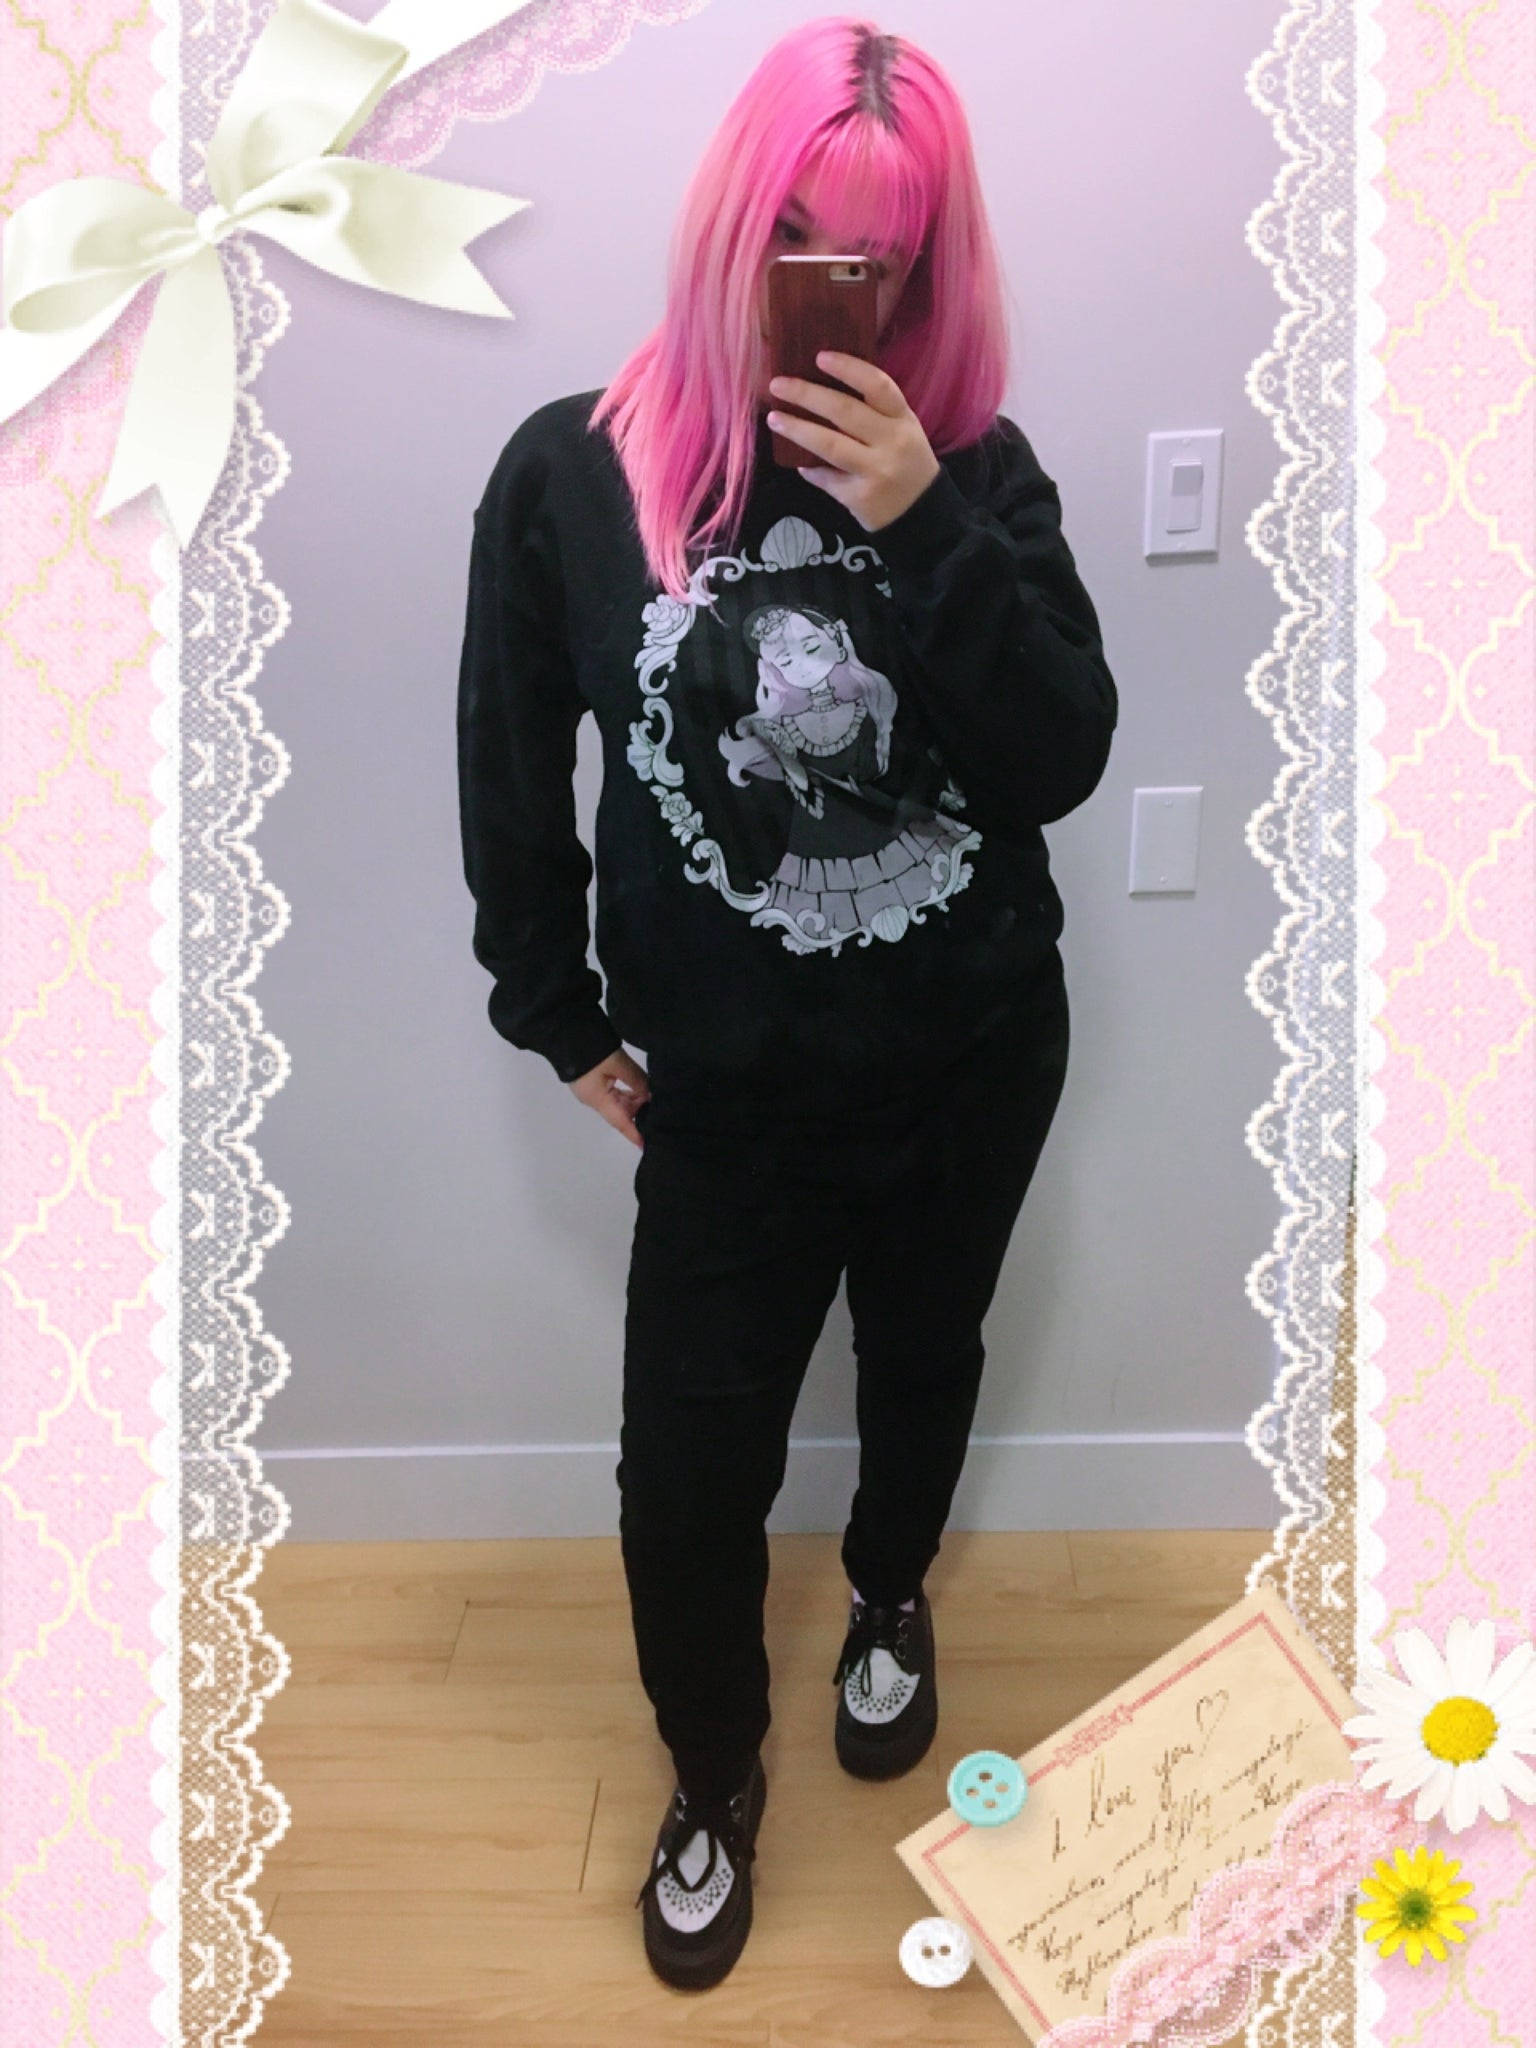 Milly Shapiro x Fawnbomb MIRROR Sweater (Black) - peachiieshop